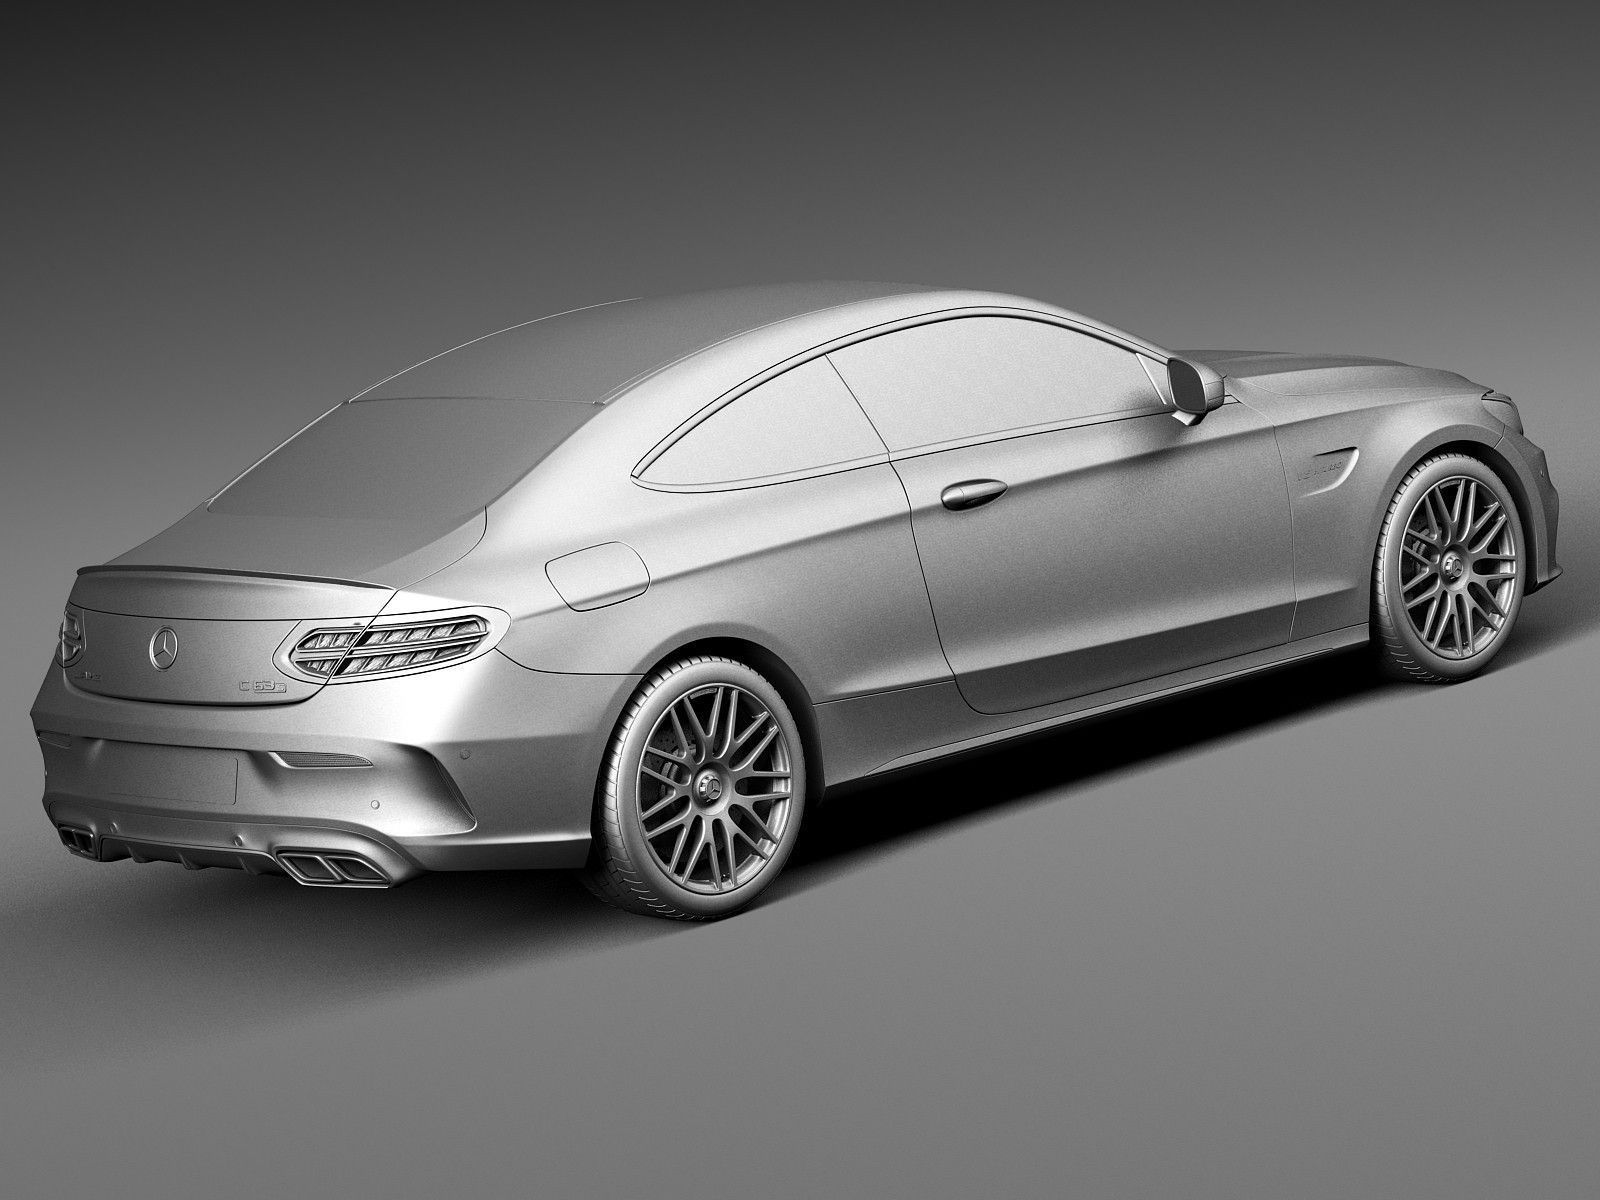 Mercedes benz c63 amg coupe 2017 3d model max obj 3ds fbx for Mercedes benz c63 2017